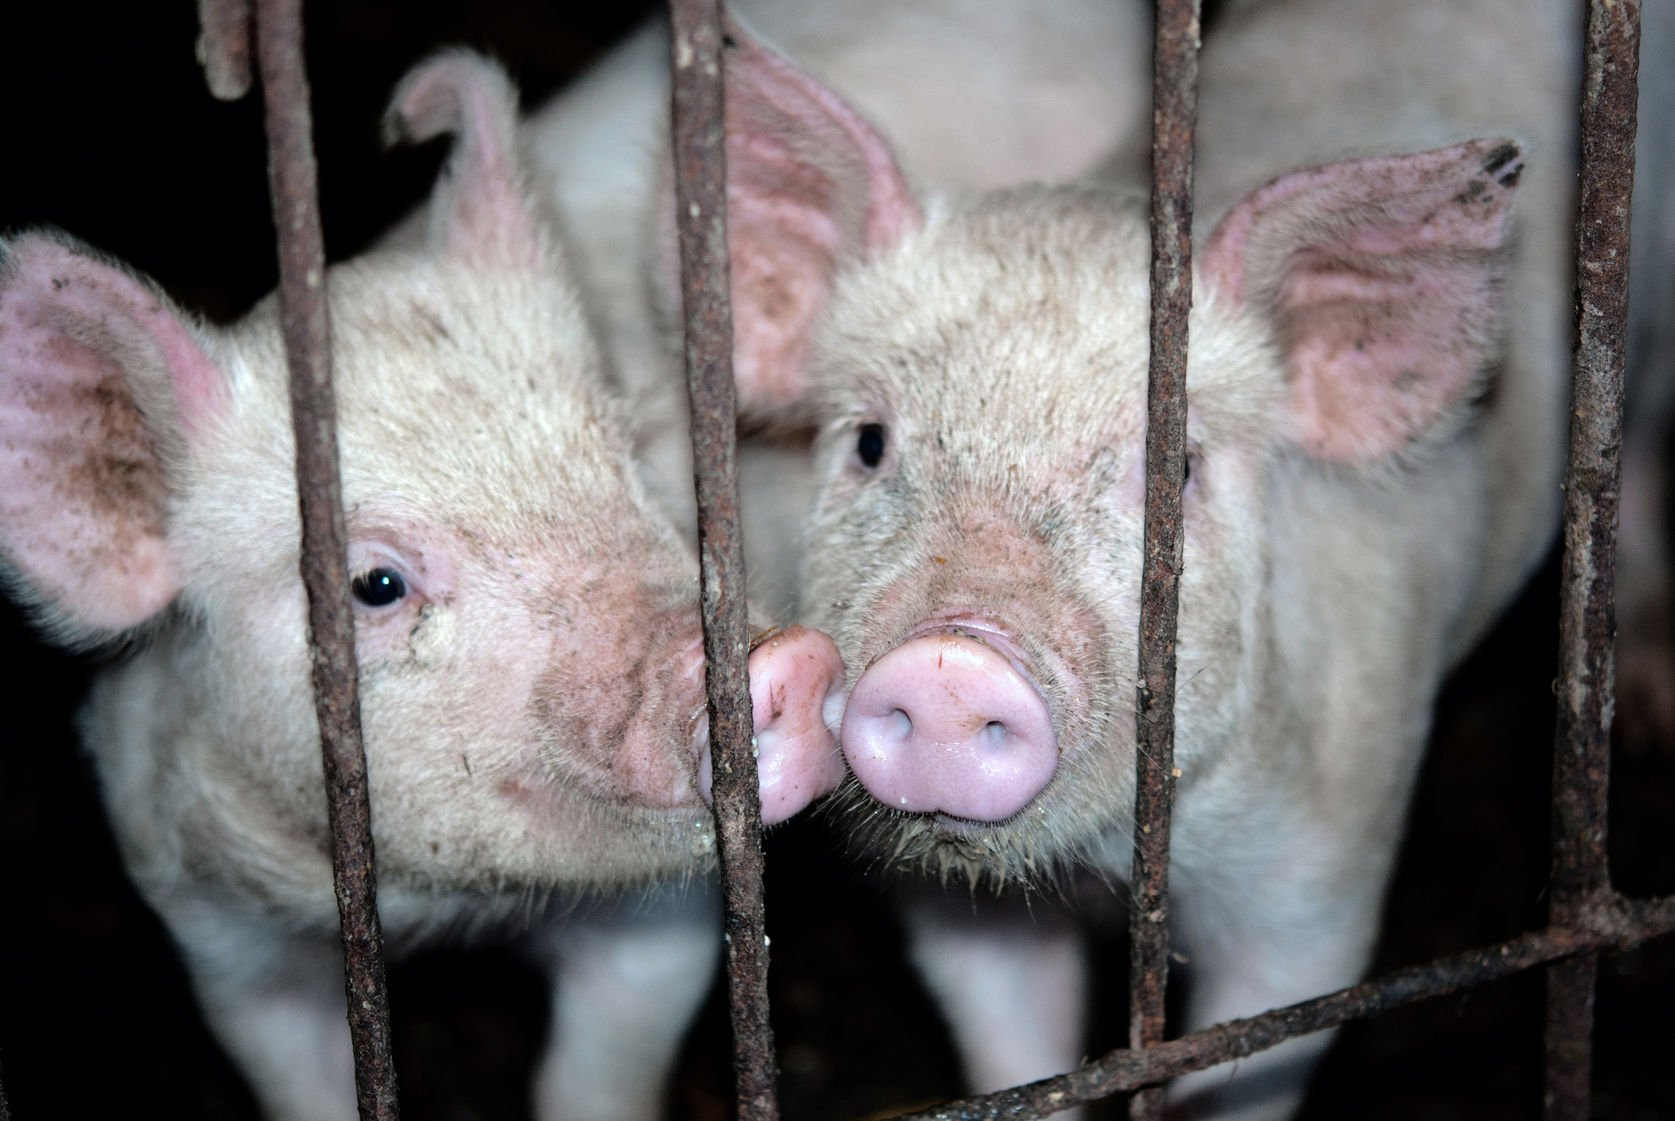 pigs in cage: animal diseases story